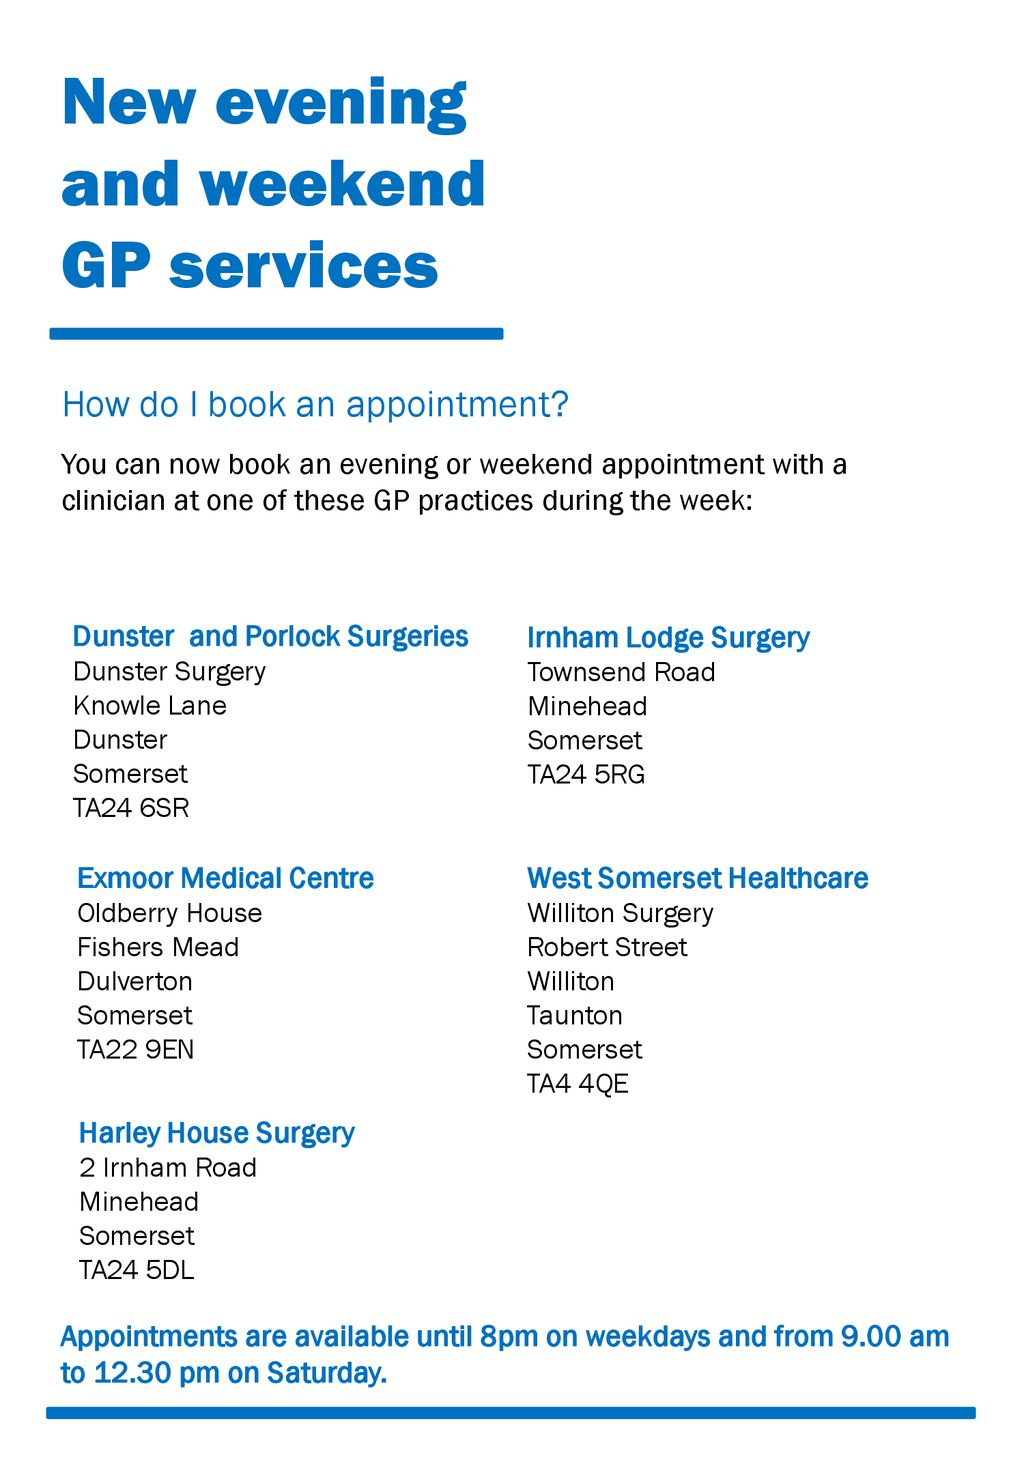 New evening and weekend GP services - ppt download